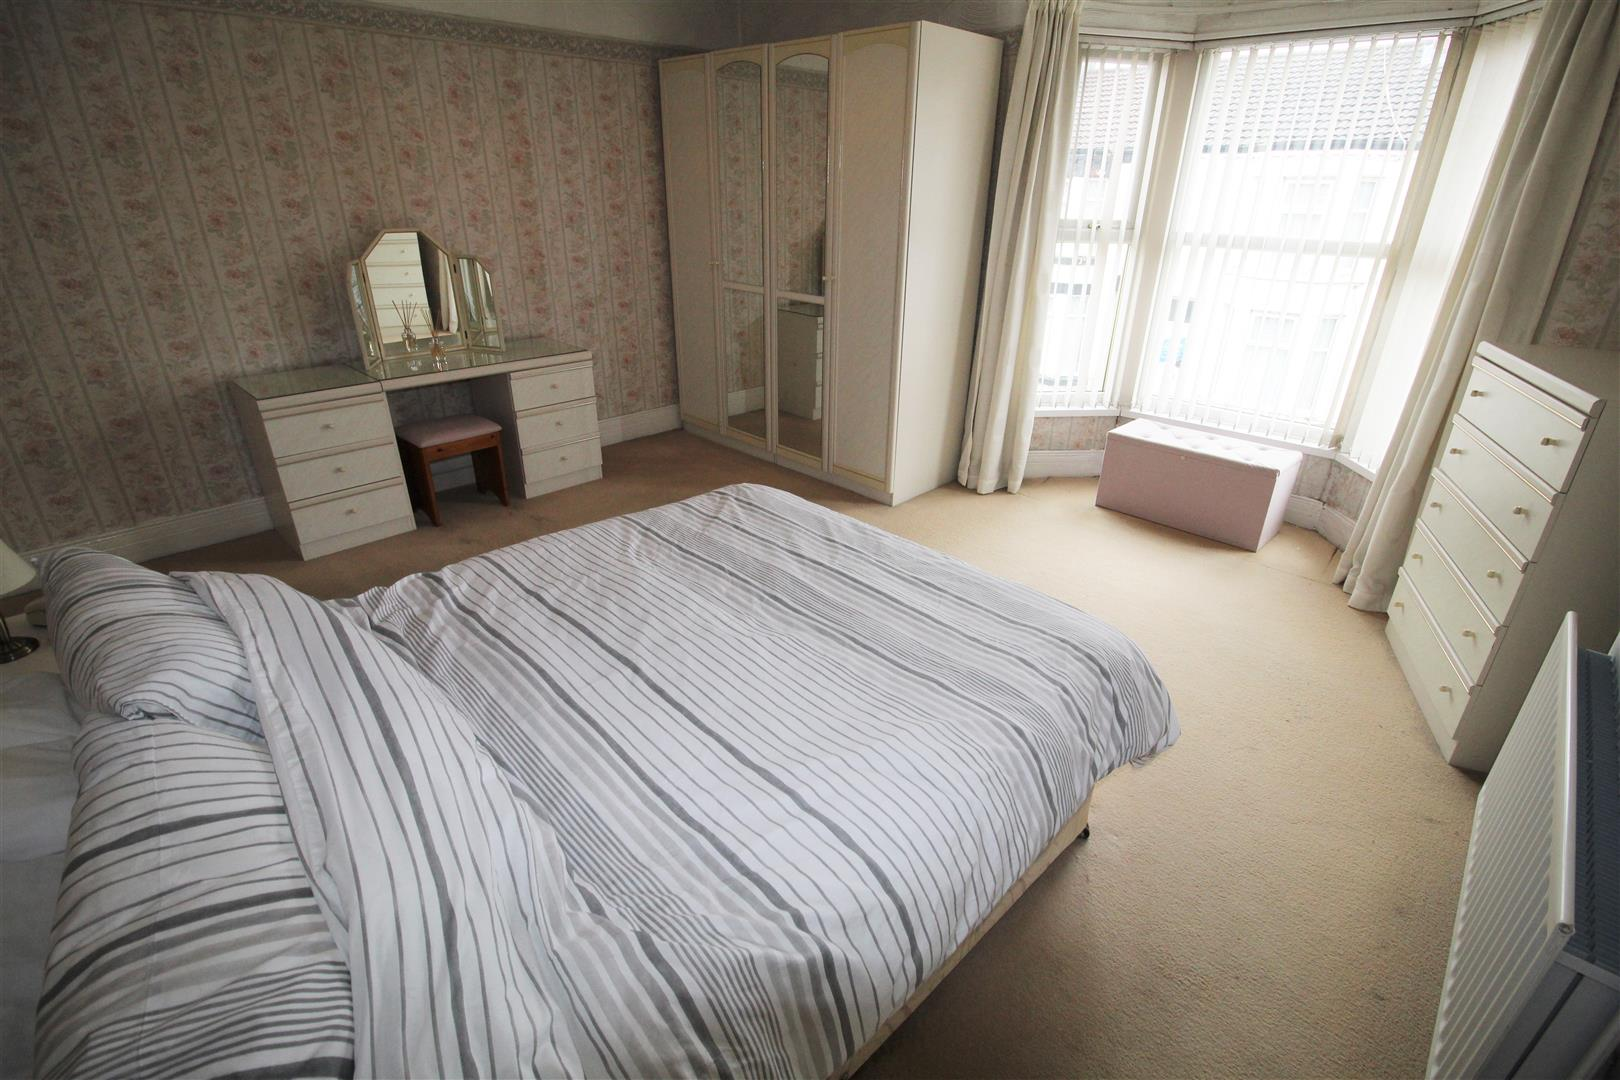 2 Bedrooms, House - Terraced, Warbreck Avenue, Liverpool